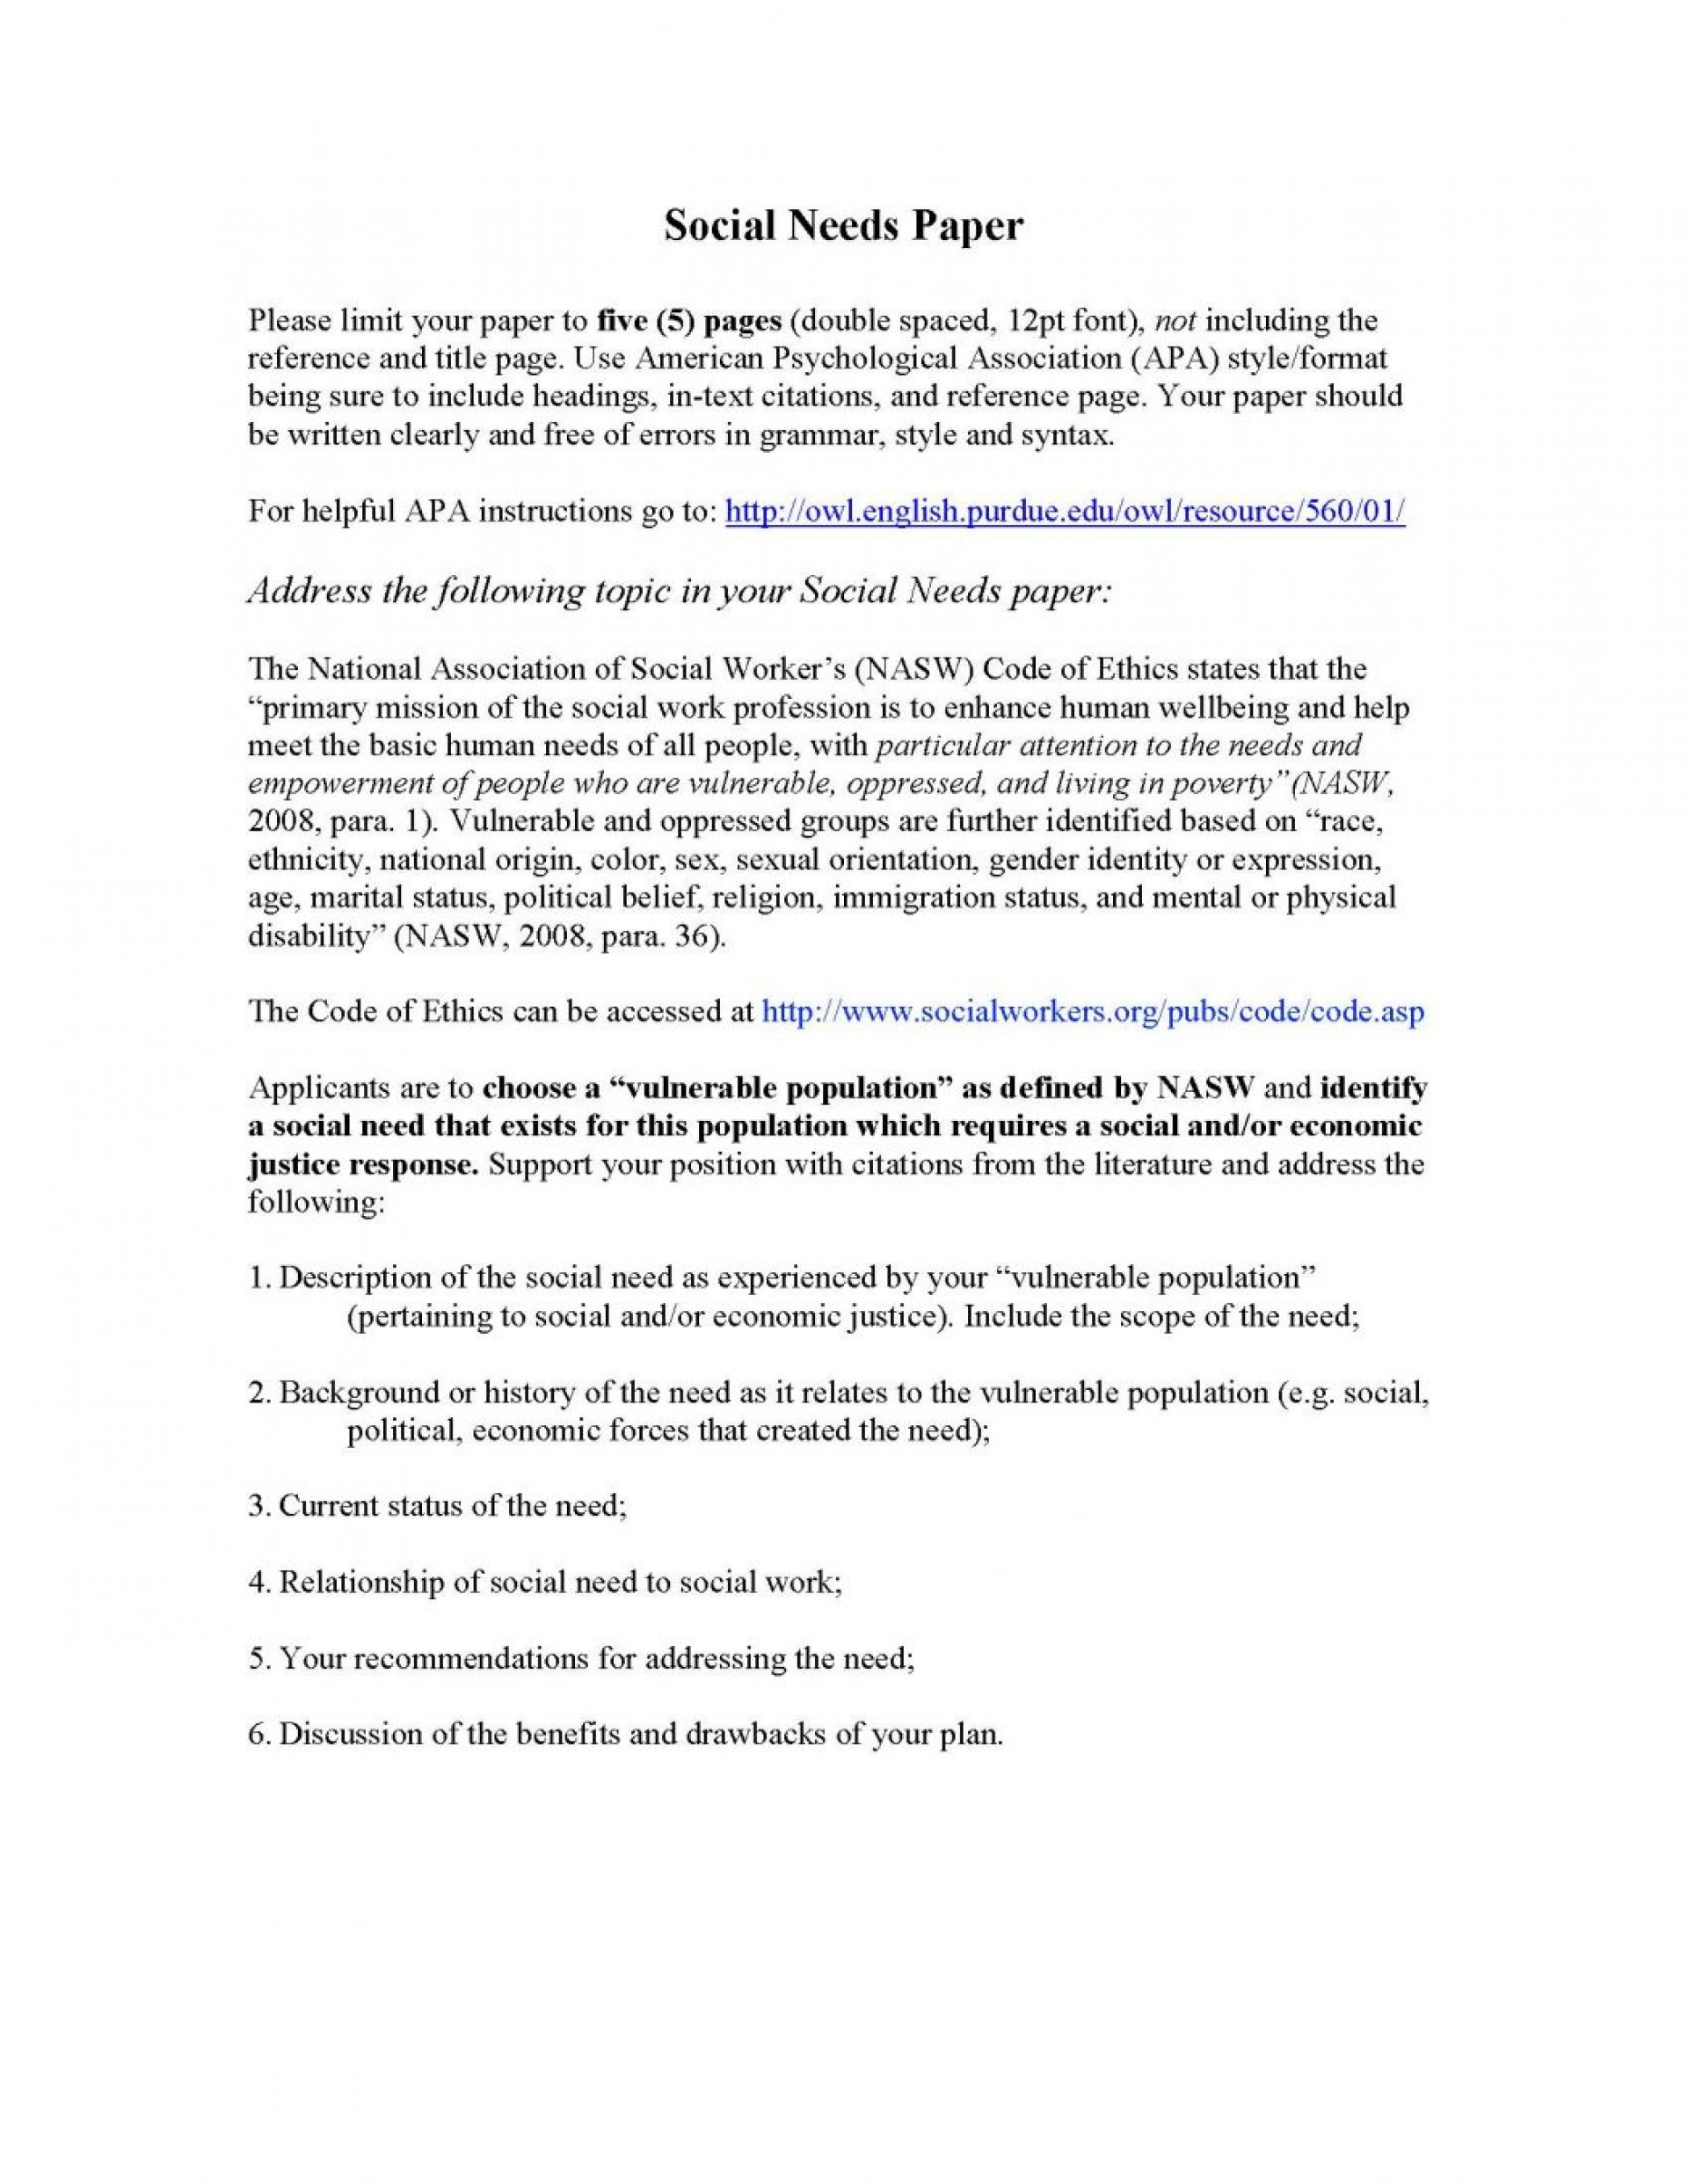 015 Why I Want To Social Worker Essay Example Sample For Graduate School From Friend Awesome Collection Of Work Grad Personal Statement Admission Essays Examples Outstanding Be A Study Do Become Became 1920